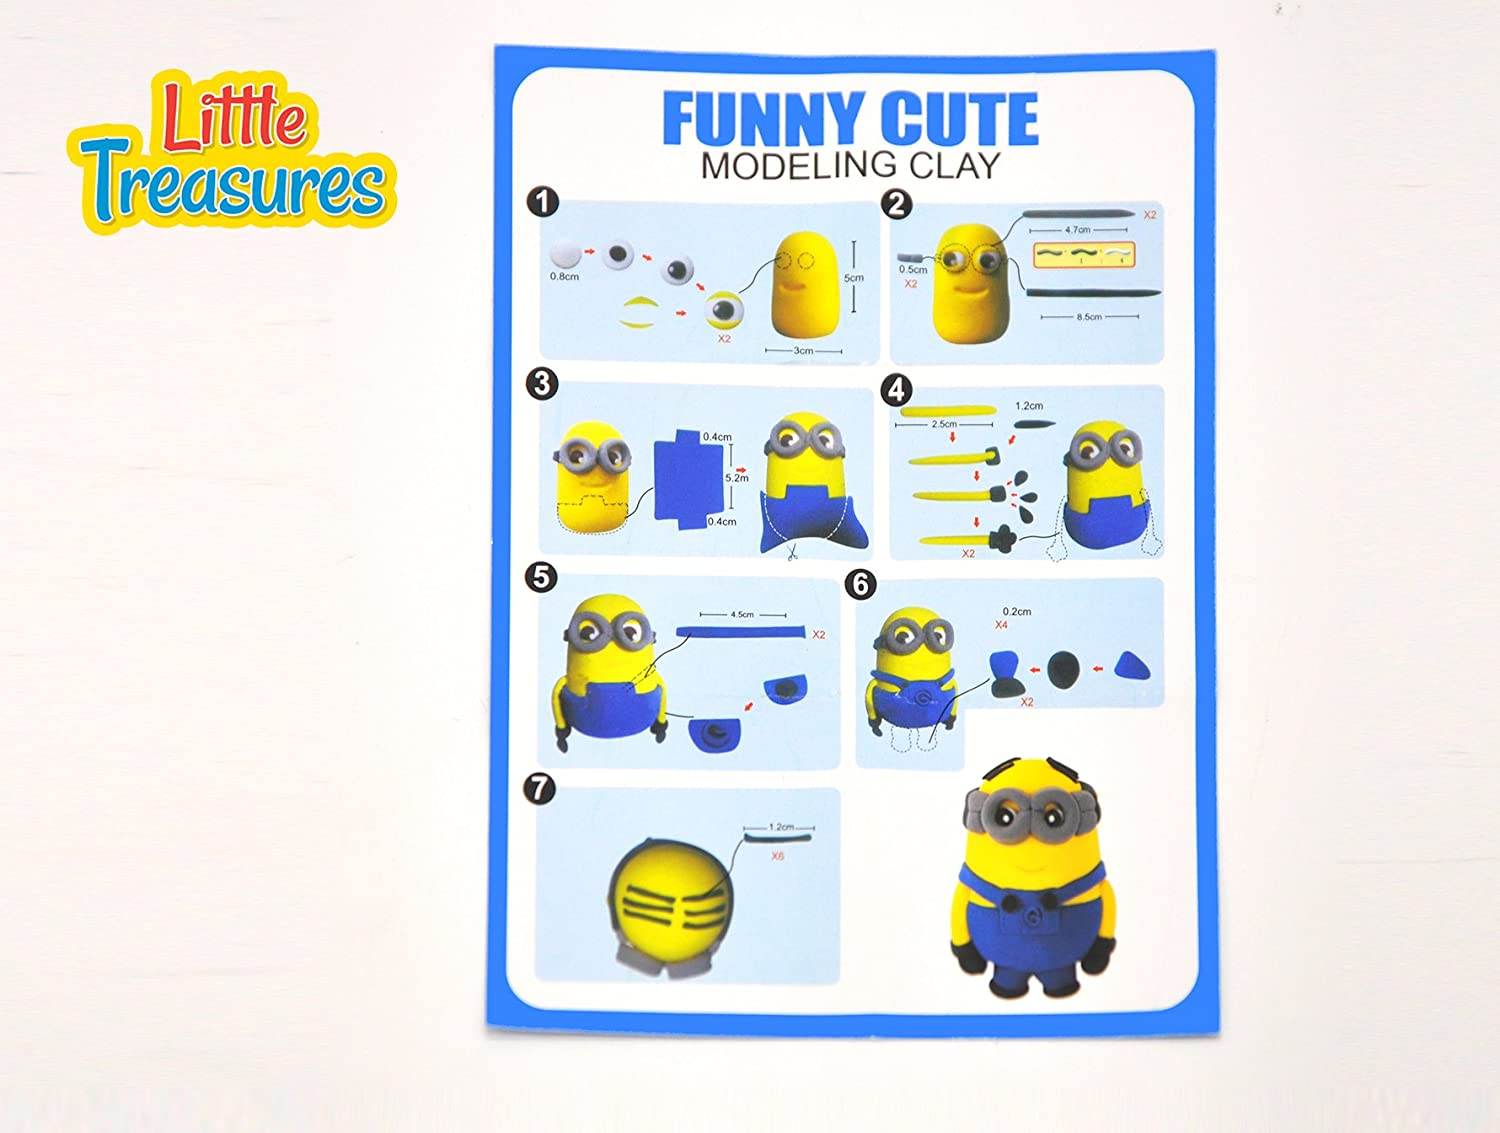 Little Treasures Super-Happy Bob Cartoon Character Clay Modeling and Sculpting DIY Play-Set Create Your 3D Favorite Figure with molding Play-Dough kit